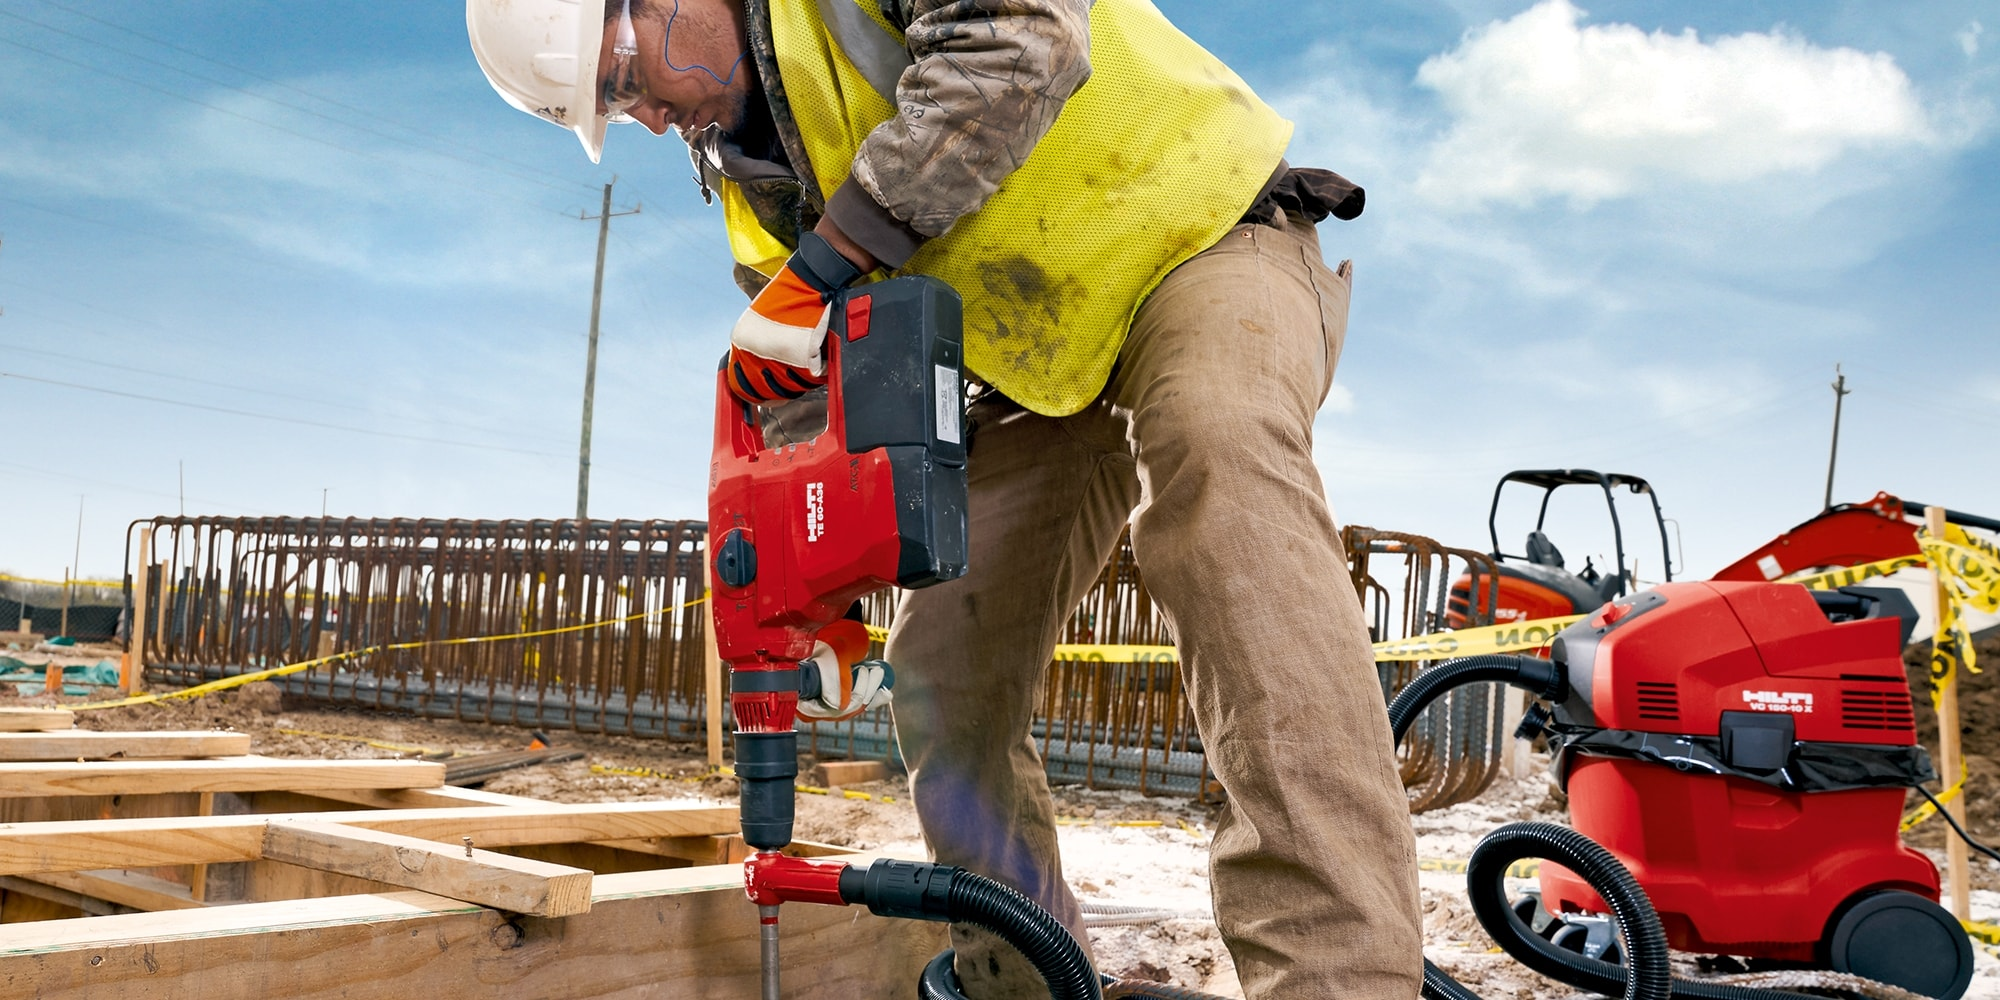 TE 60-A36 Cordless Combihammers, being used virtually dust-free with a TE-YD hollow drill bit